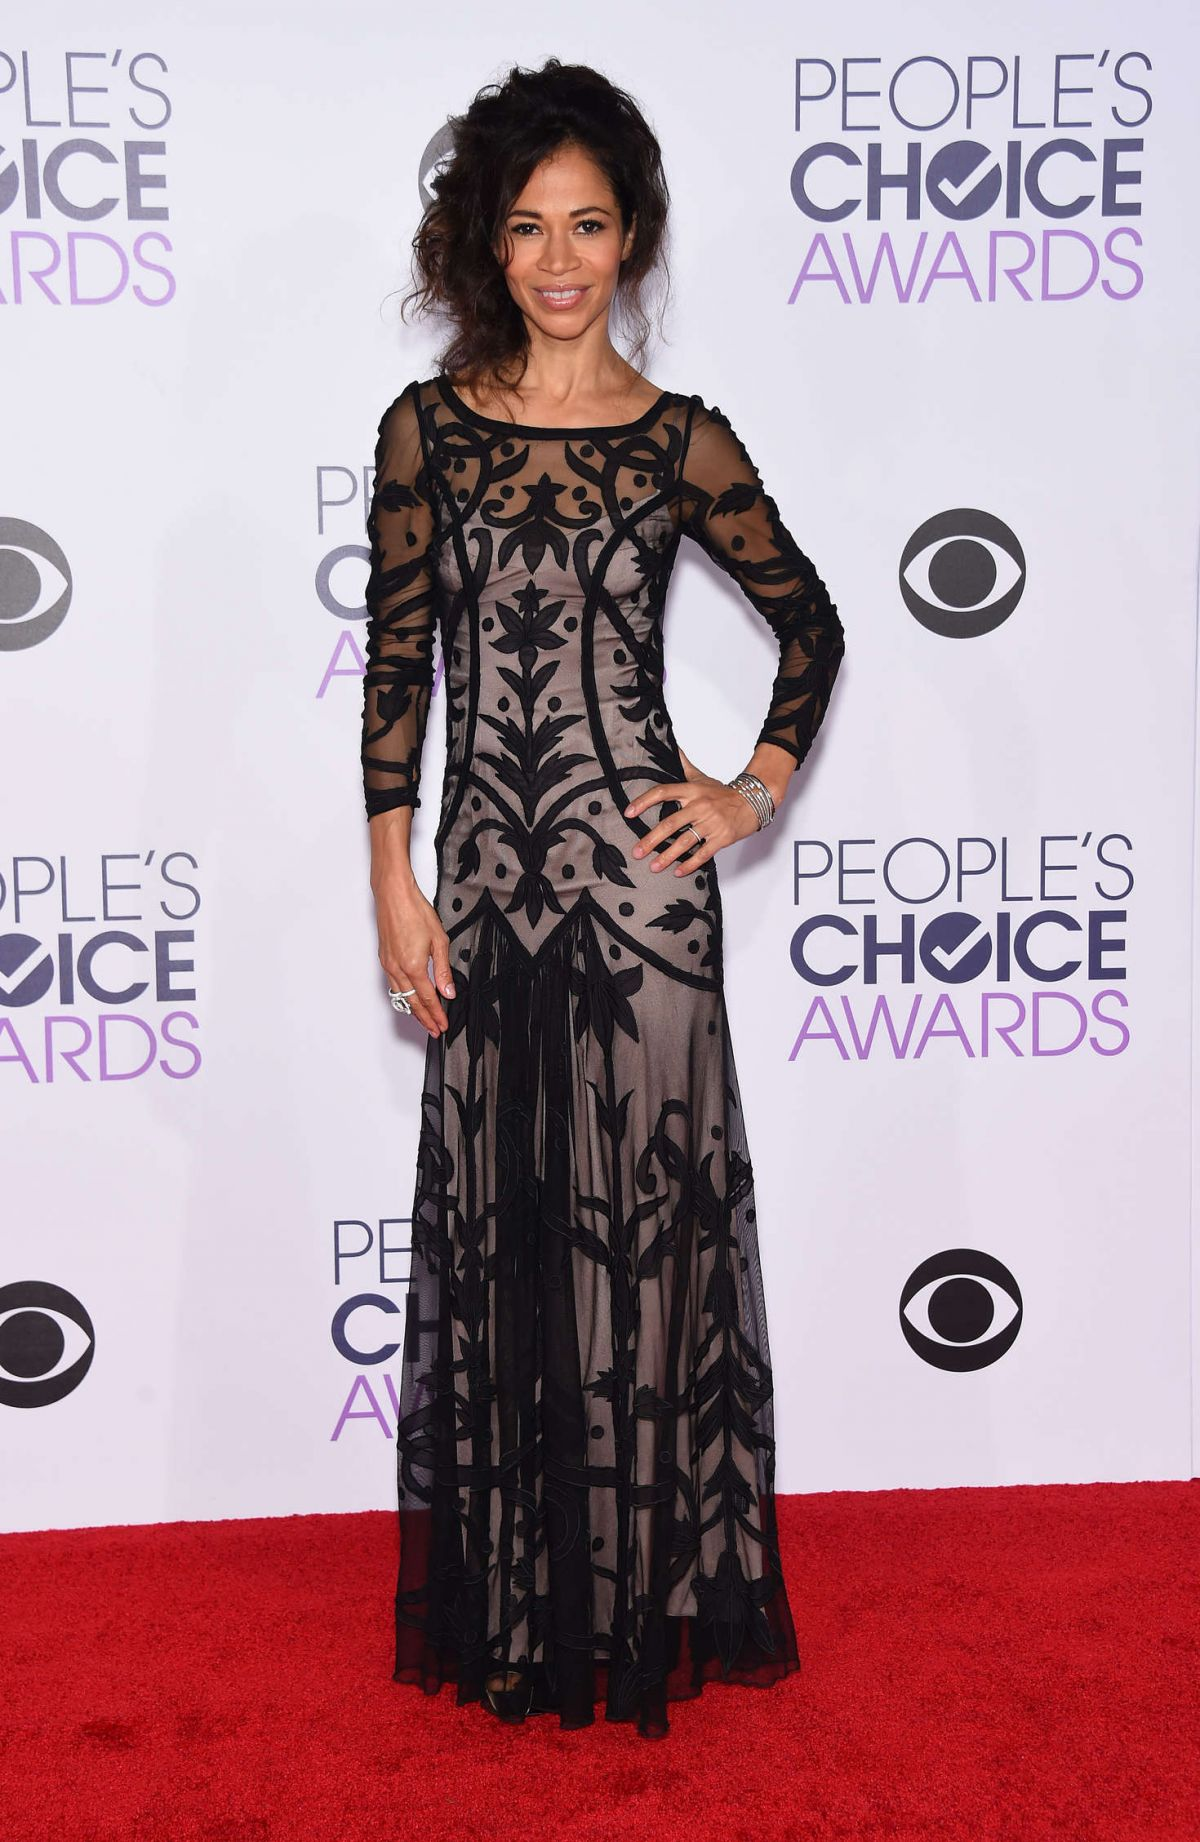 SHERRI SAUM at 2016 People's Choice Awards in Los Angeles 01/06/2016